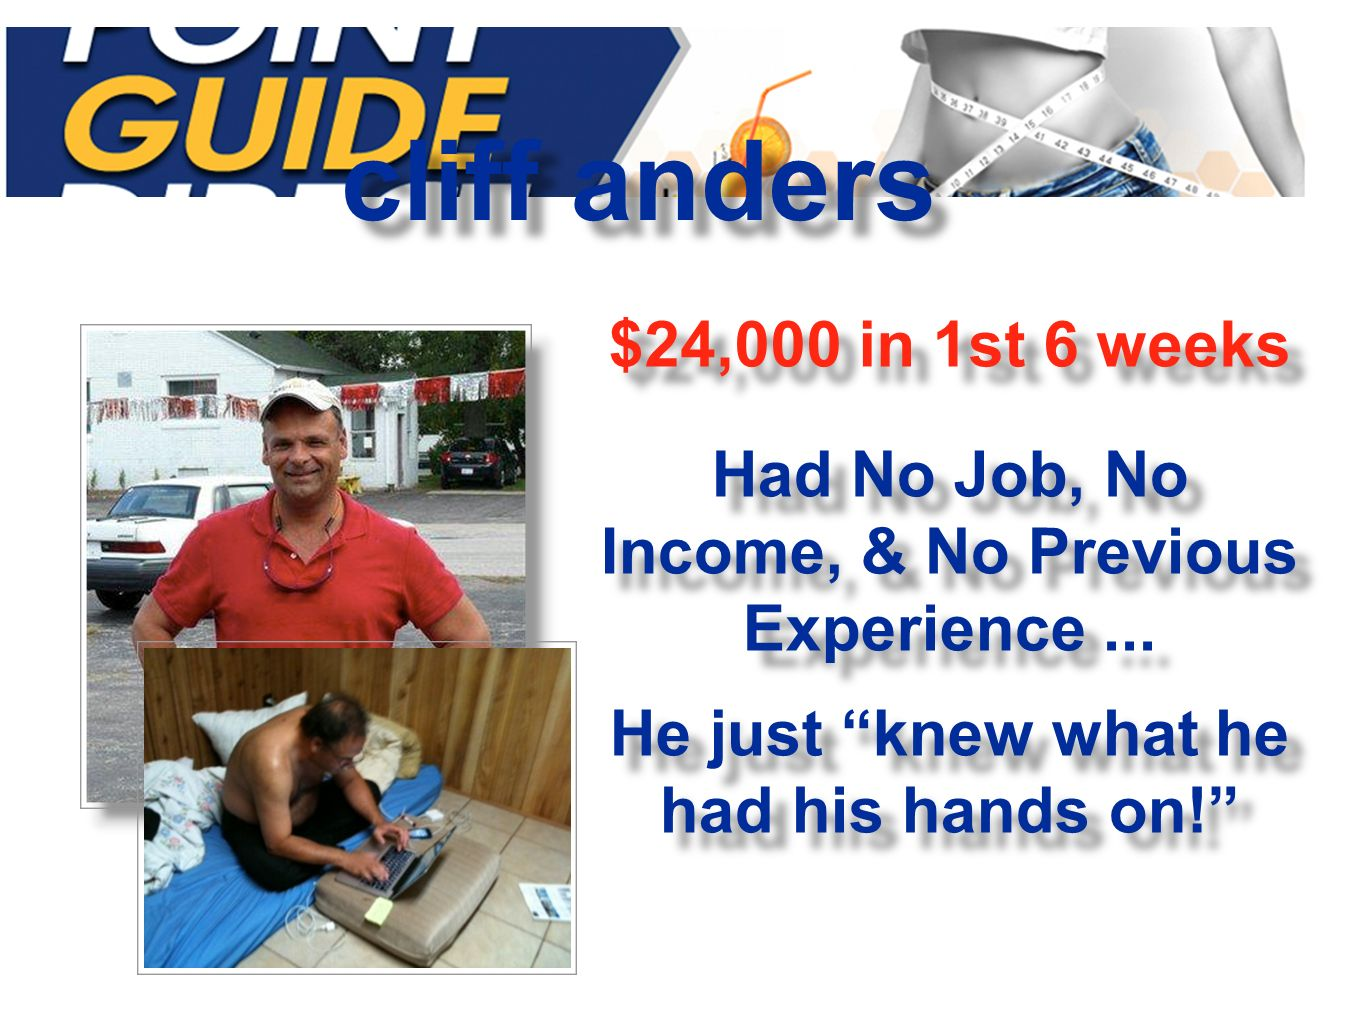 $24,000 in 1st 6 weeks cliff anders Had No Job, No Income, & No Previous Experience... He just knew what he had his hands on! Had No Job, No Income, &